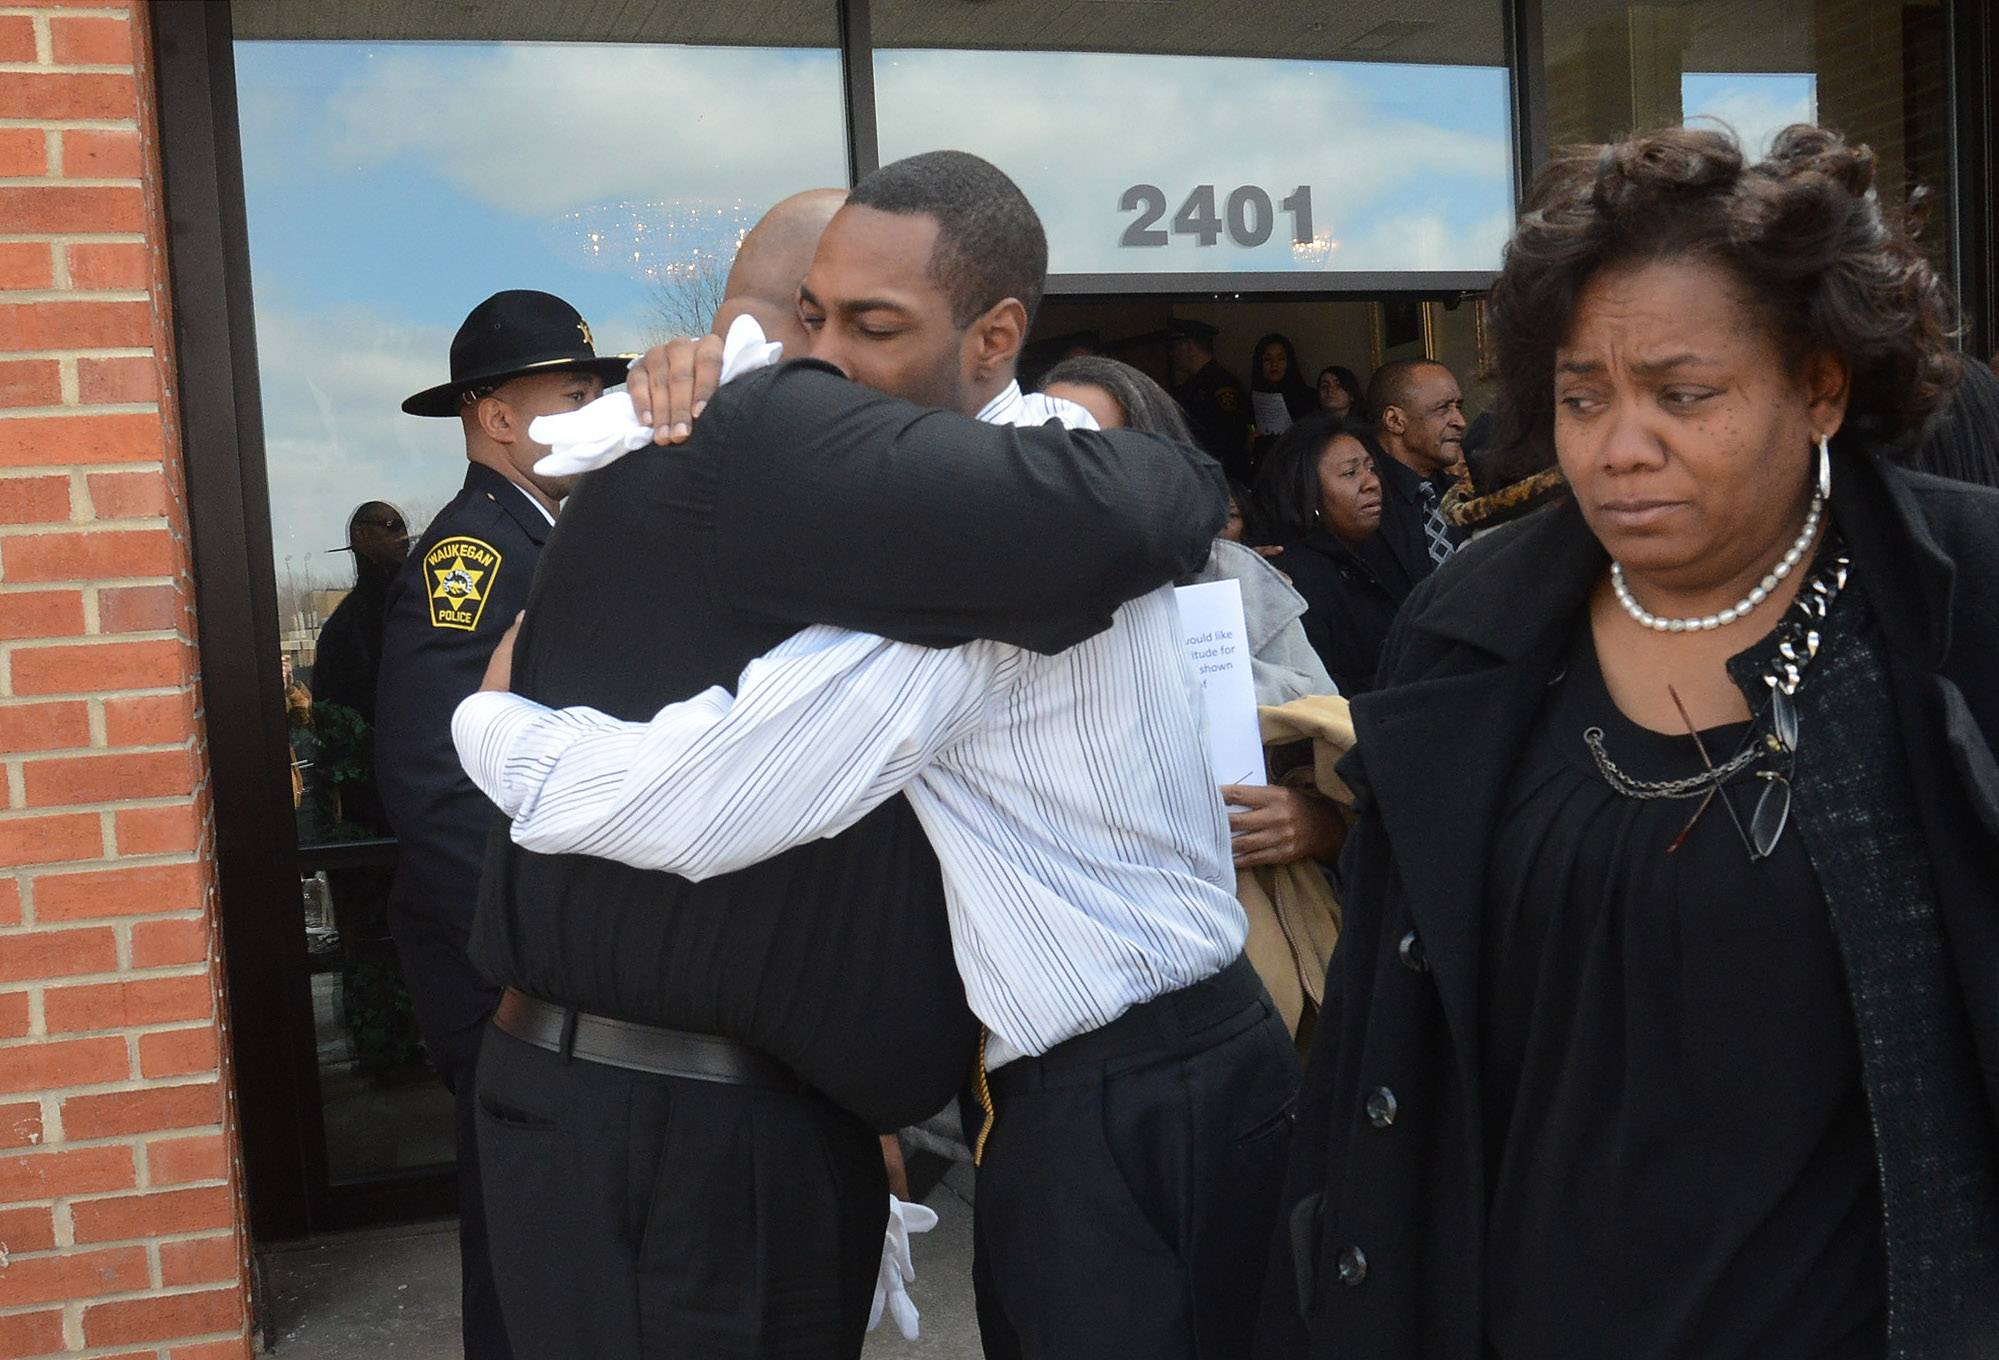 Demetri Frison-Green, right, consoles his father, Ossie Green Jr., after the funeral Tuesday for Artis Yancey, former Lake County coroner and Waukegan police chief. Frison-Green was Yancey's great nephew and Green Jr. was Yancey's nephew.